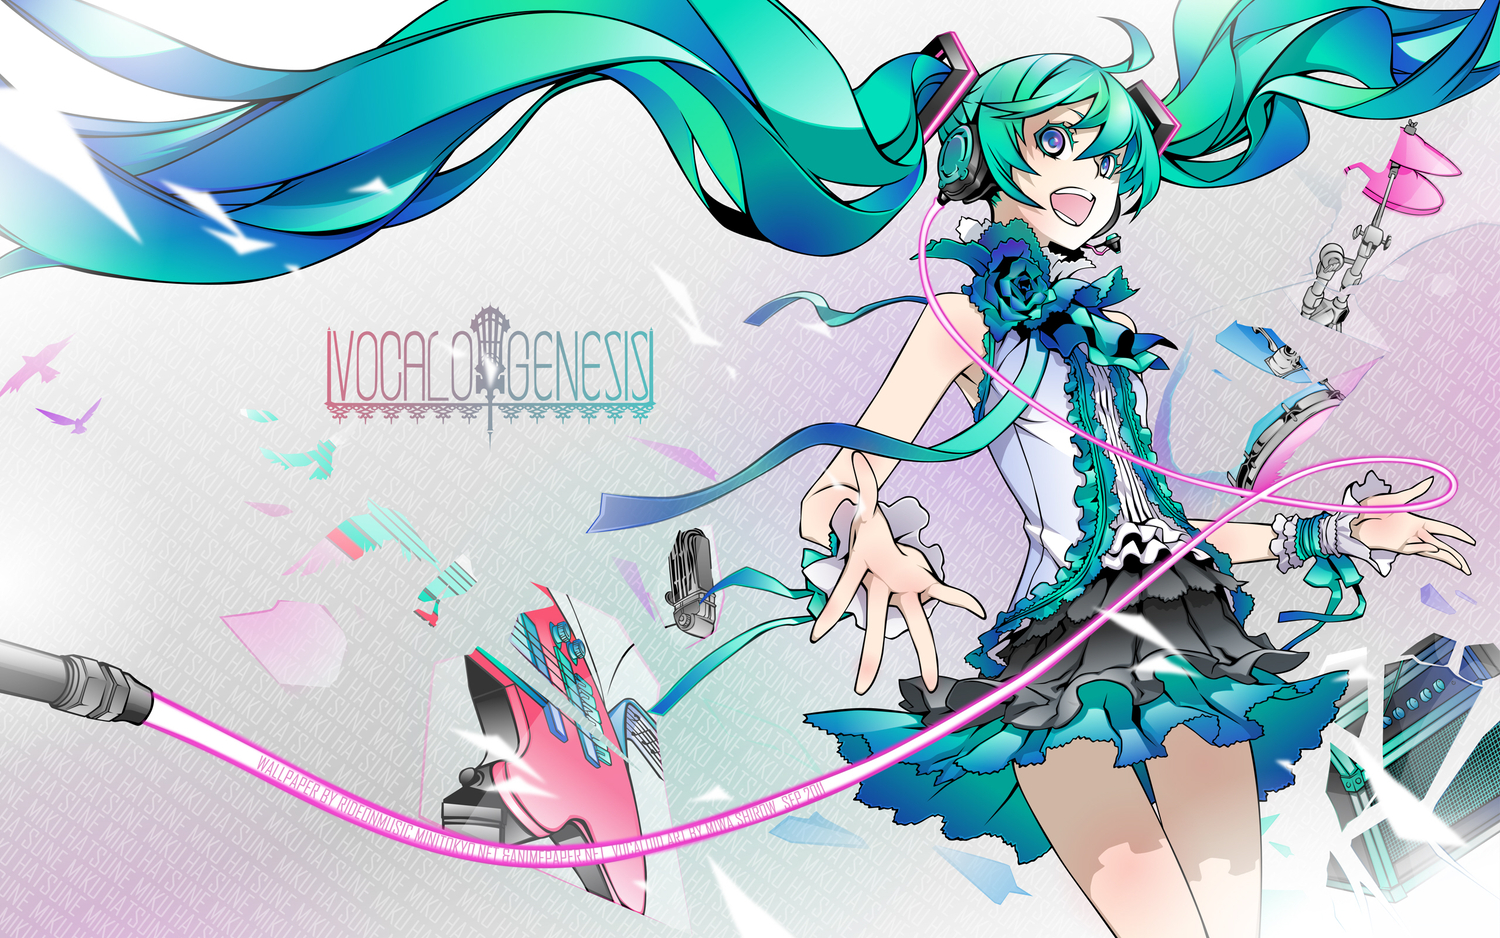 blue_hair hatsune_miku headphones long_hair miwa_shirow purple_eyes skirt twintails vector vocaloid watermark